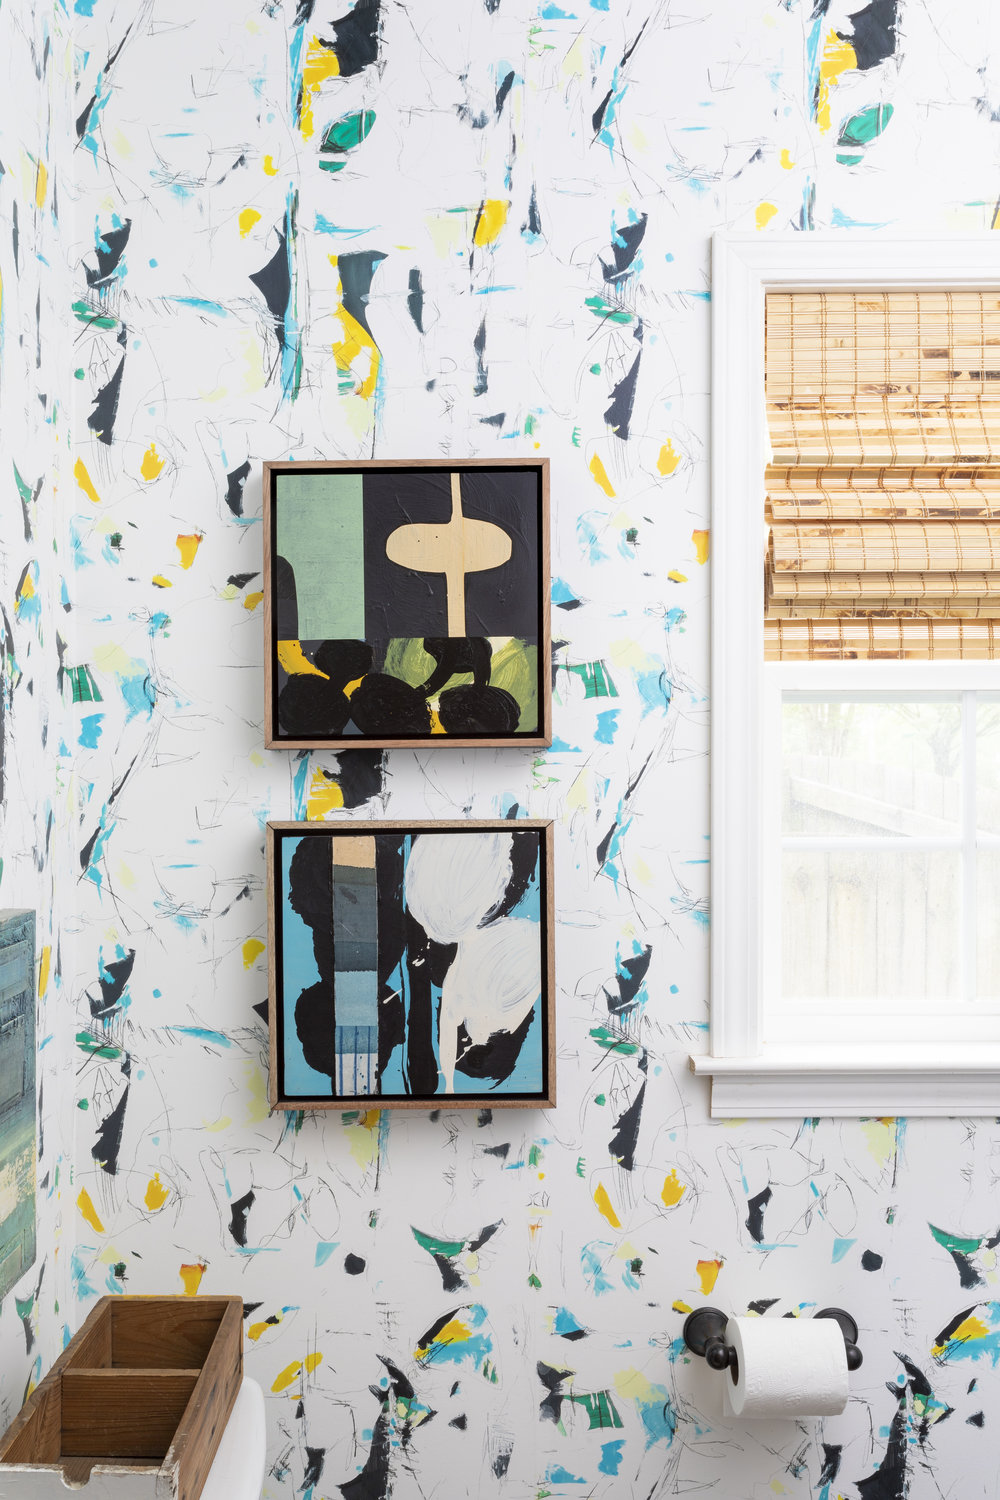 Katie Walker  abstracts bring pair perfectly with this custom wallpaper.